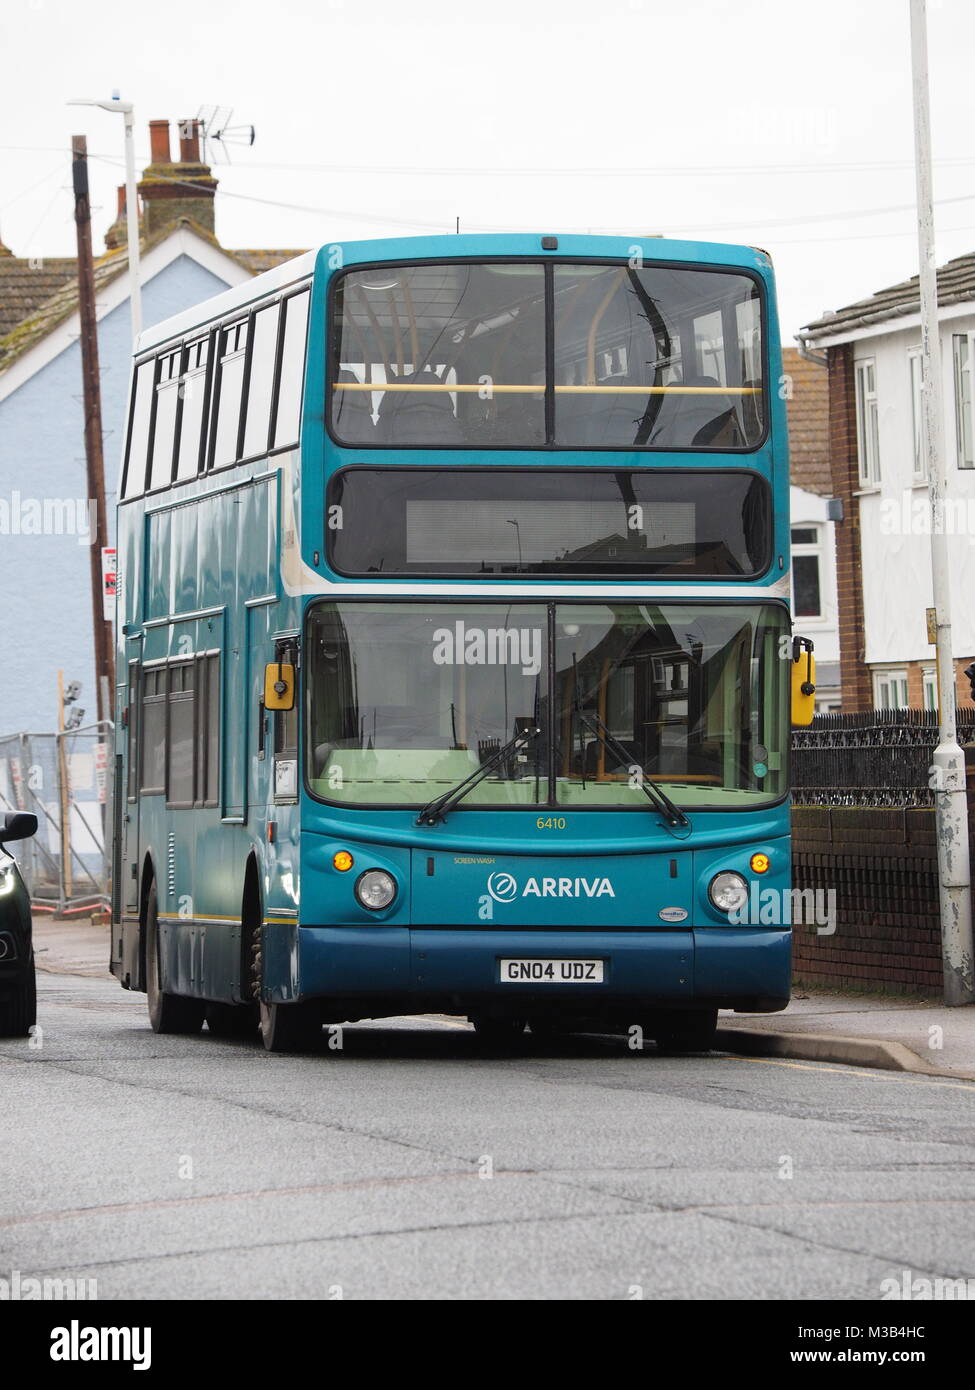 Sheerness, Kent, UK. 10th Feb, 2018. A broken down Arriva double decker bus caused an obstruction in Marine Parade. Stock Photo